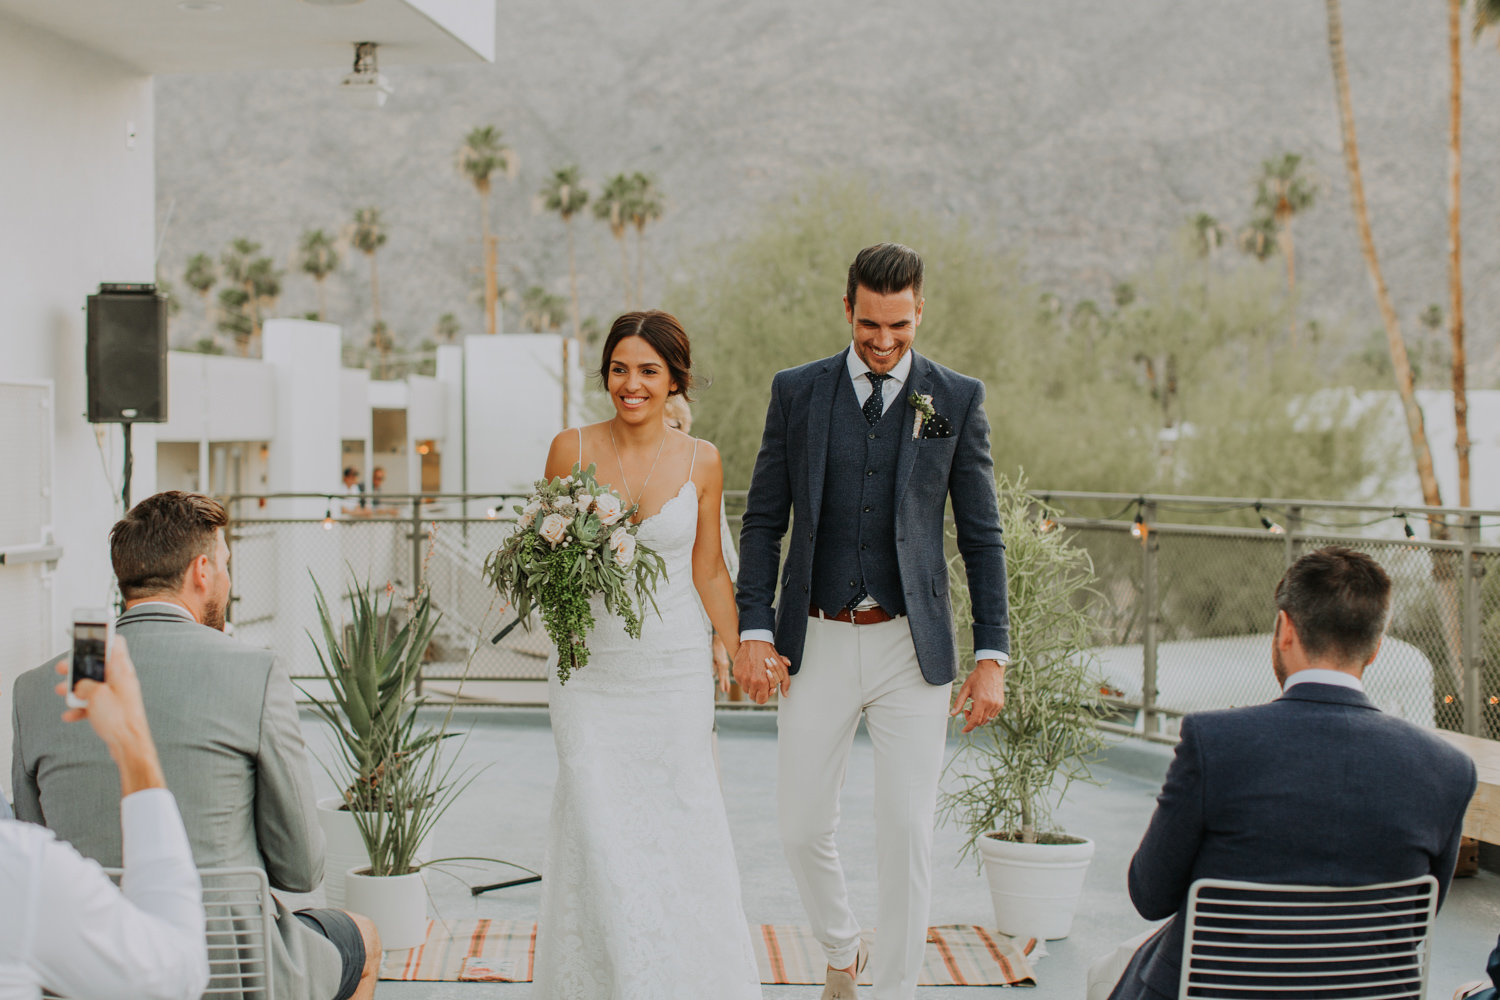 Brianna Broyles_Palm Springs Wedding Photographer_Ace Hotel Wedding_Ace Hotel Palm Springs-55